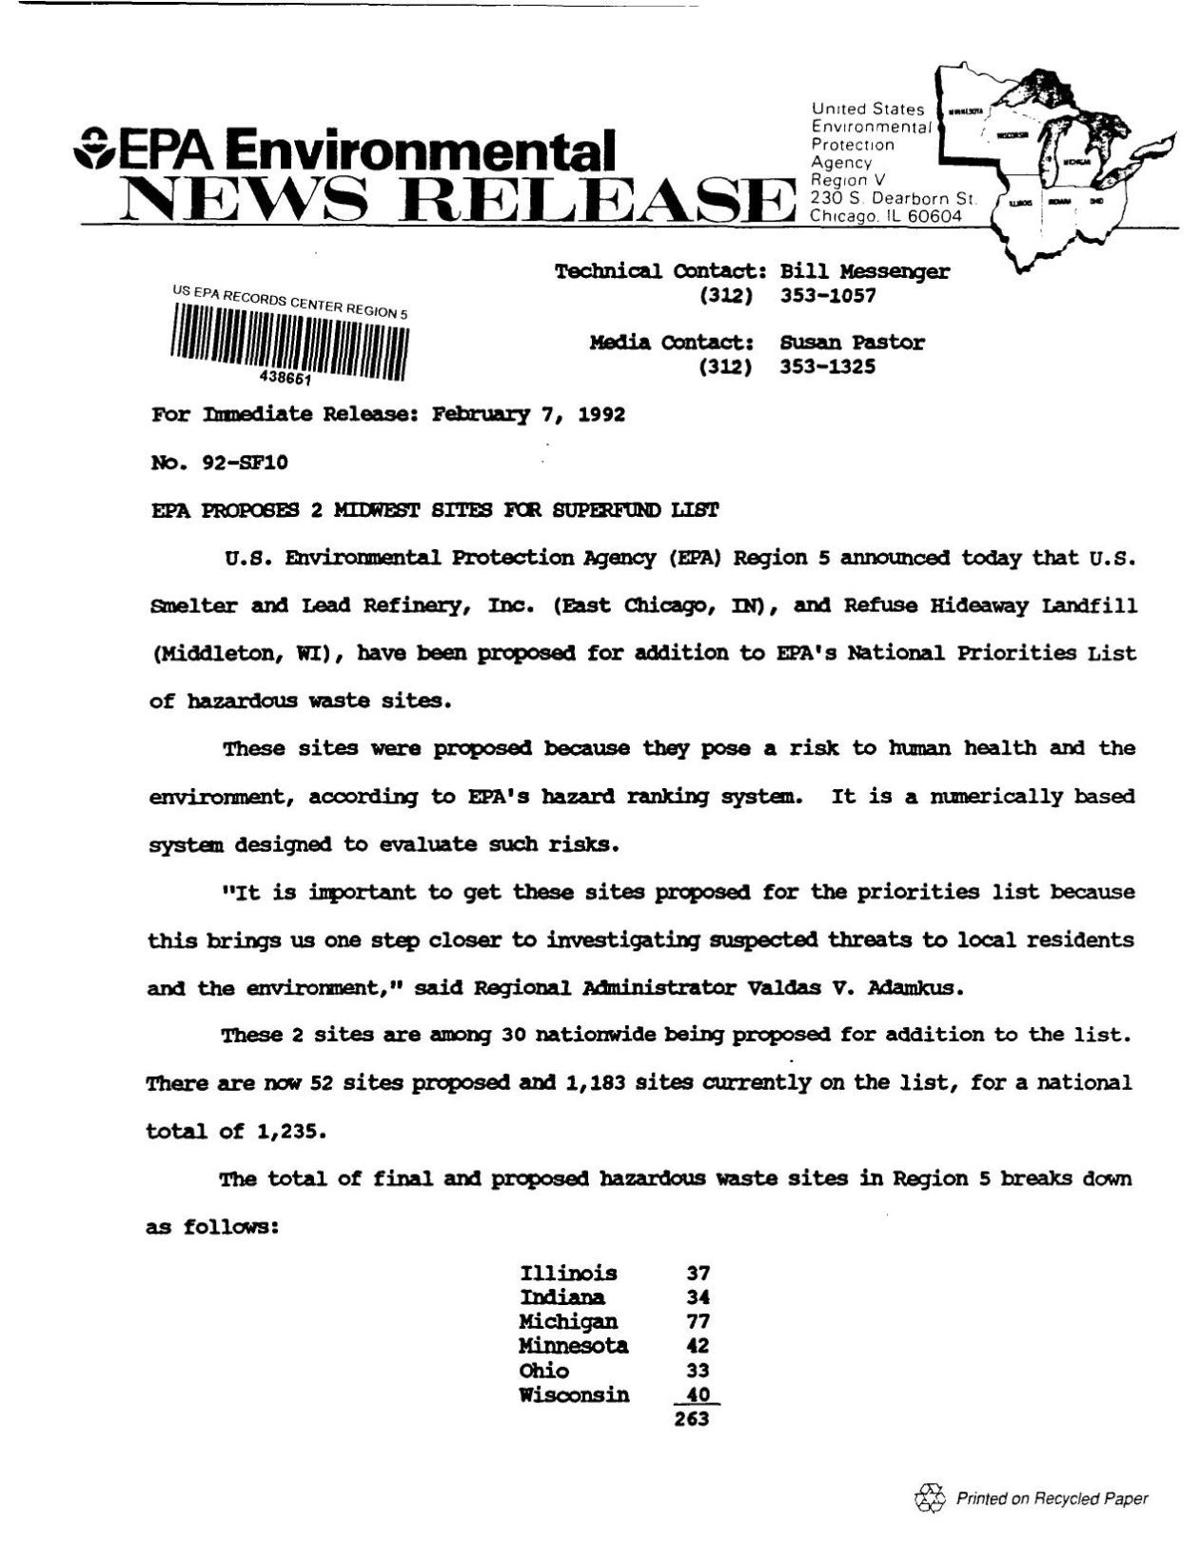 1992 EPA release on Superfund proposals